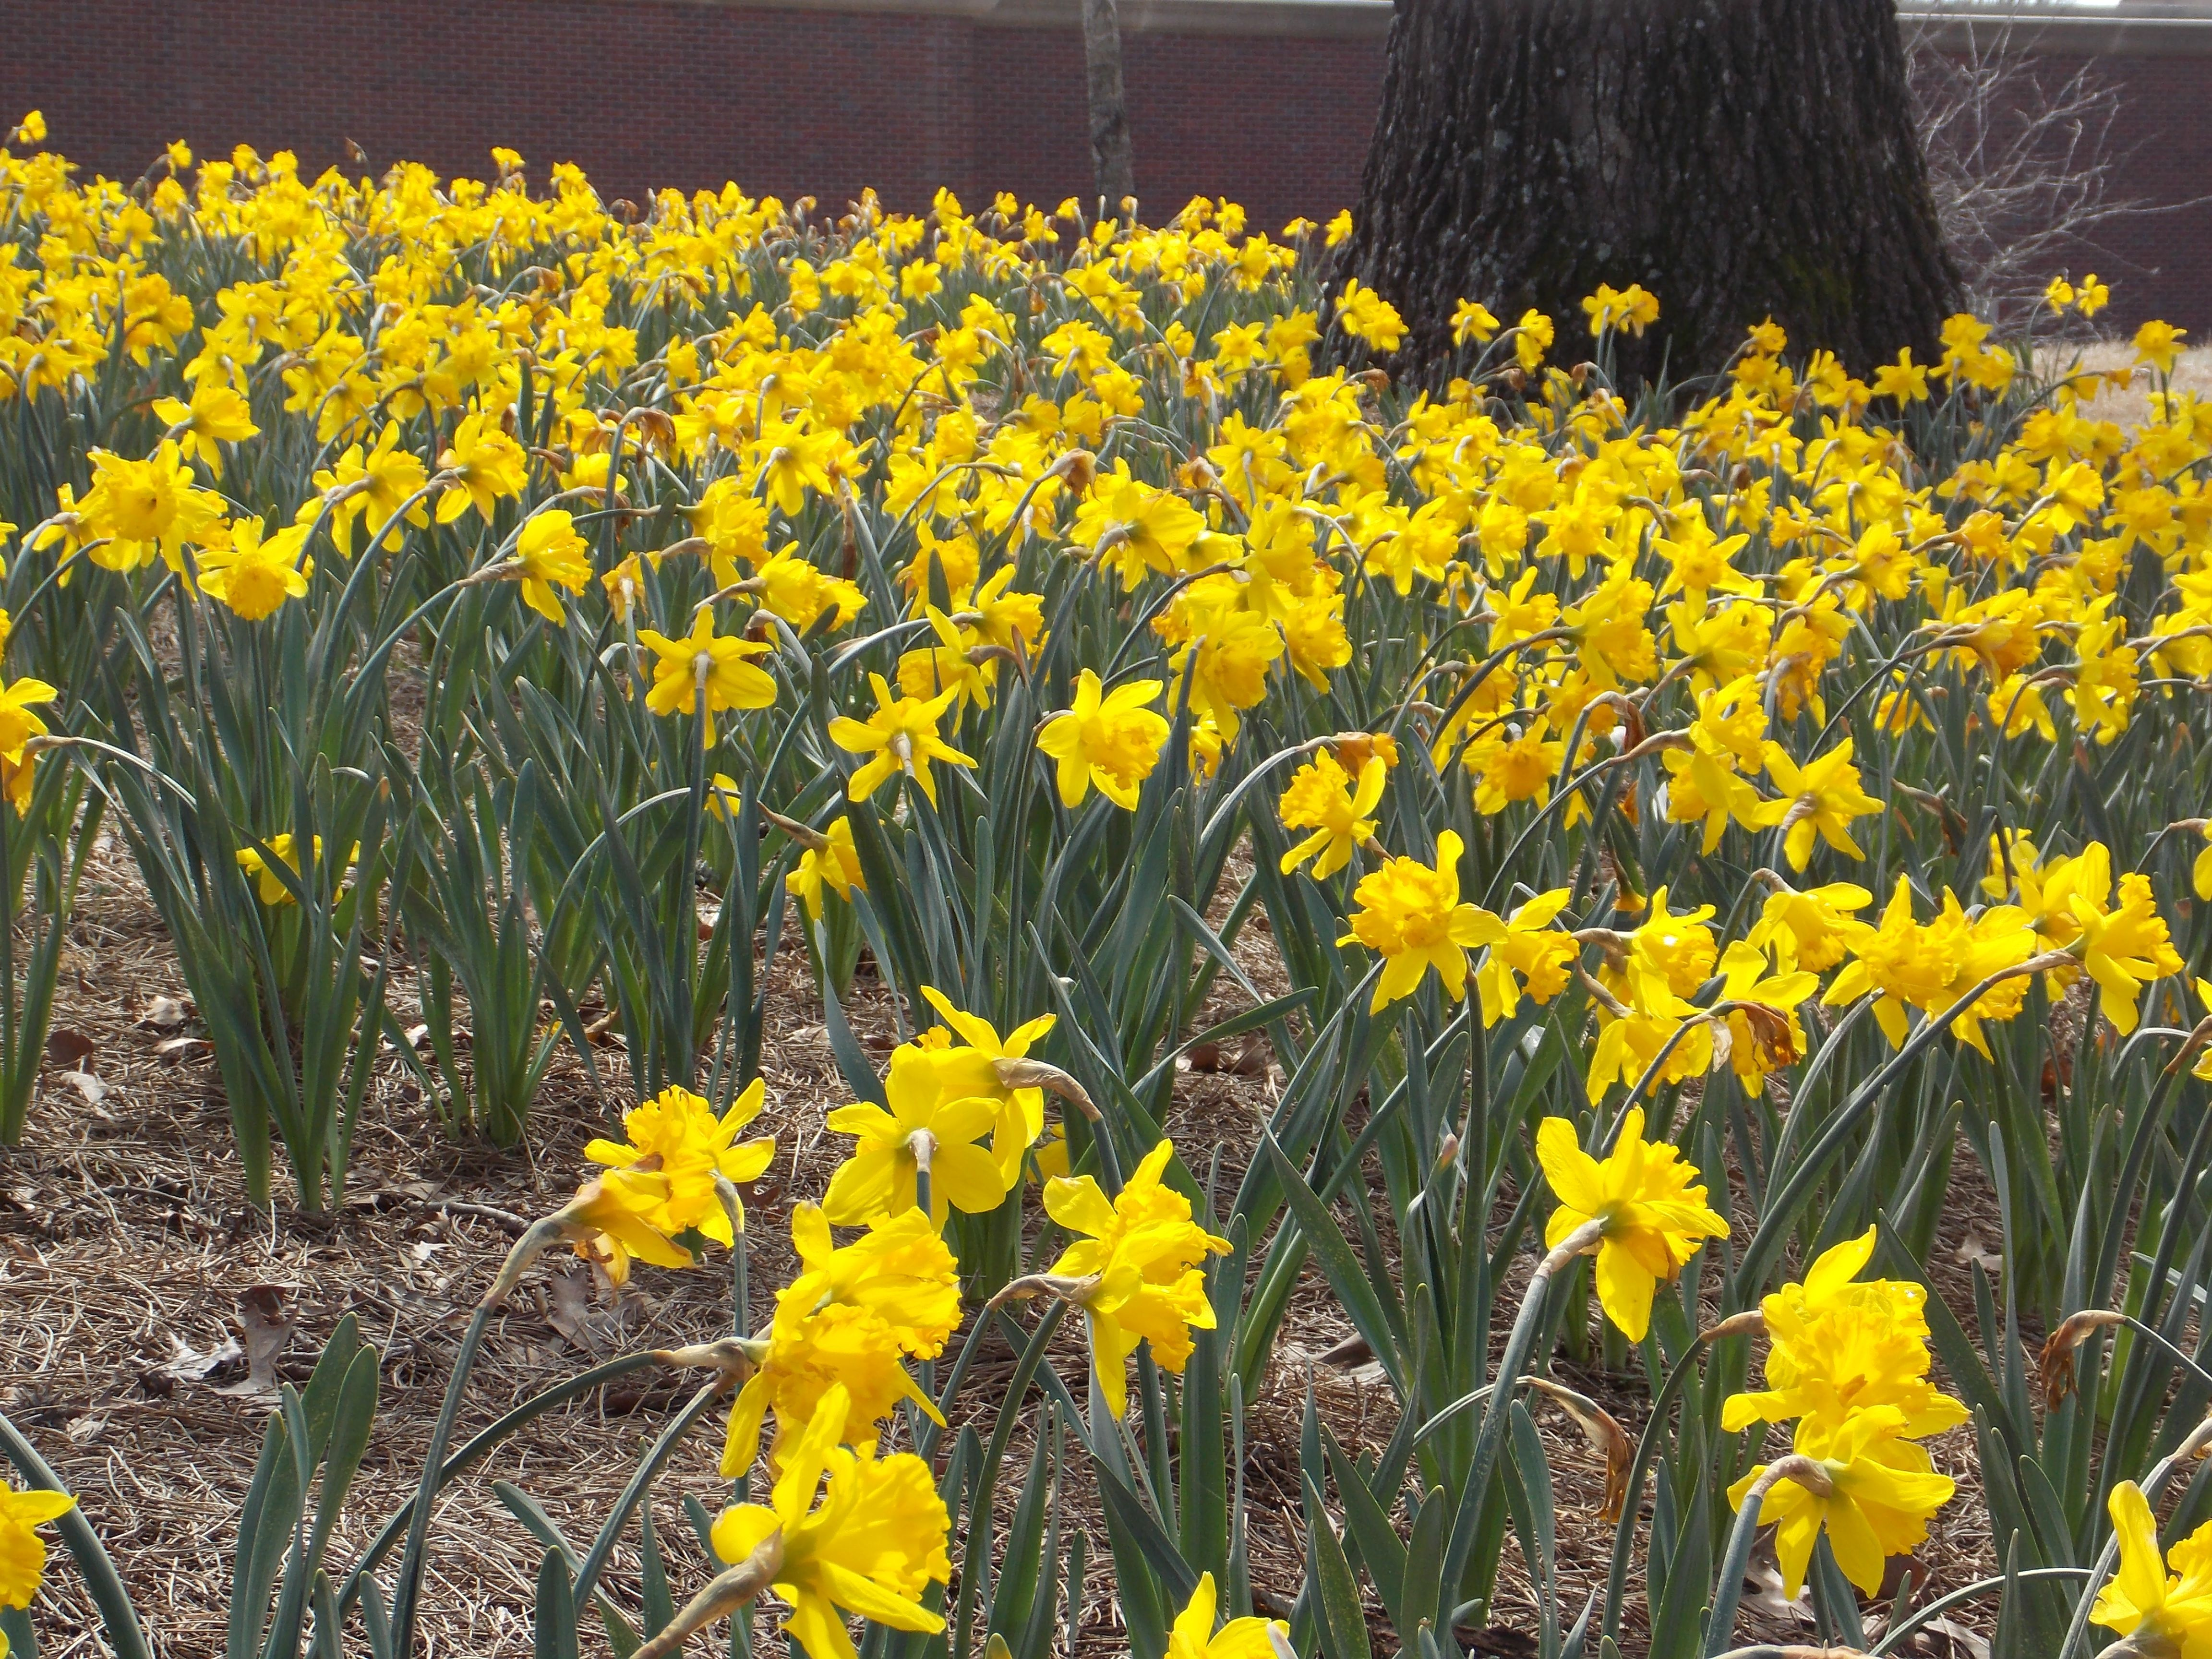 When how to plant daffodil bulbs - Curb Appeal Fall Is The Time To Plant Daffodil Bulbs